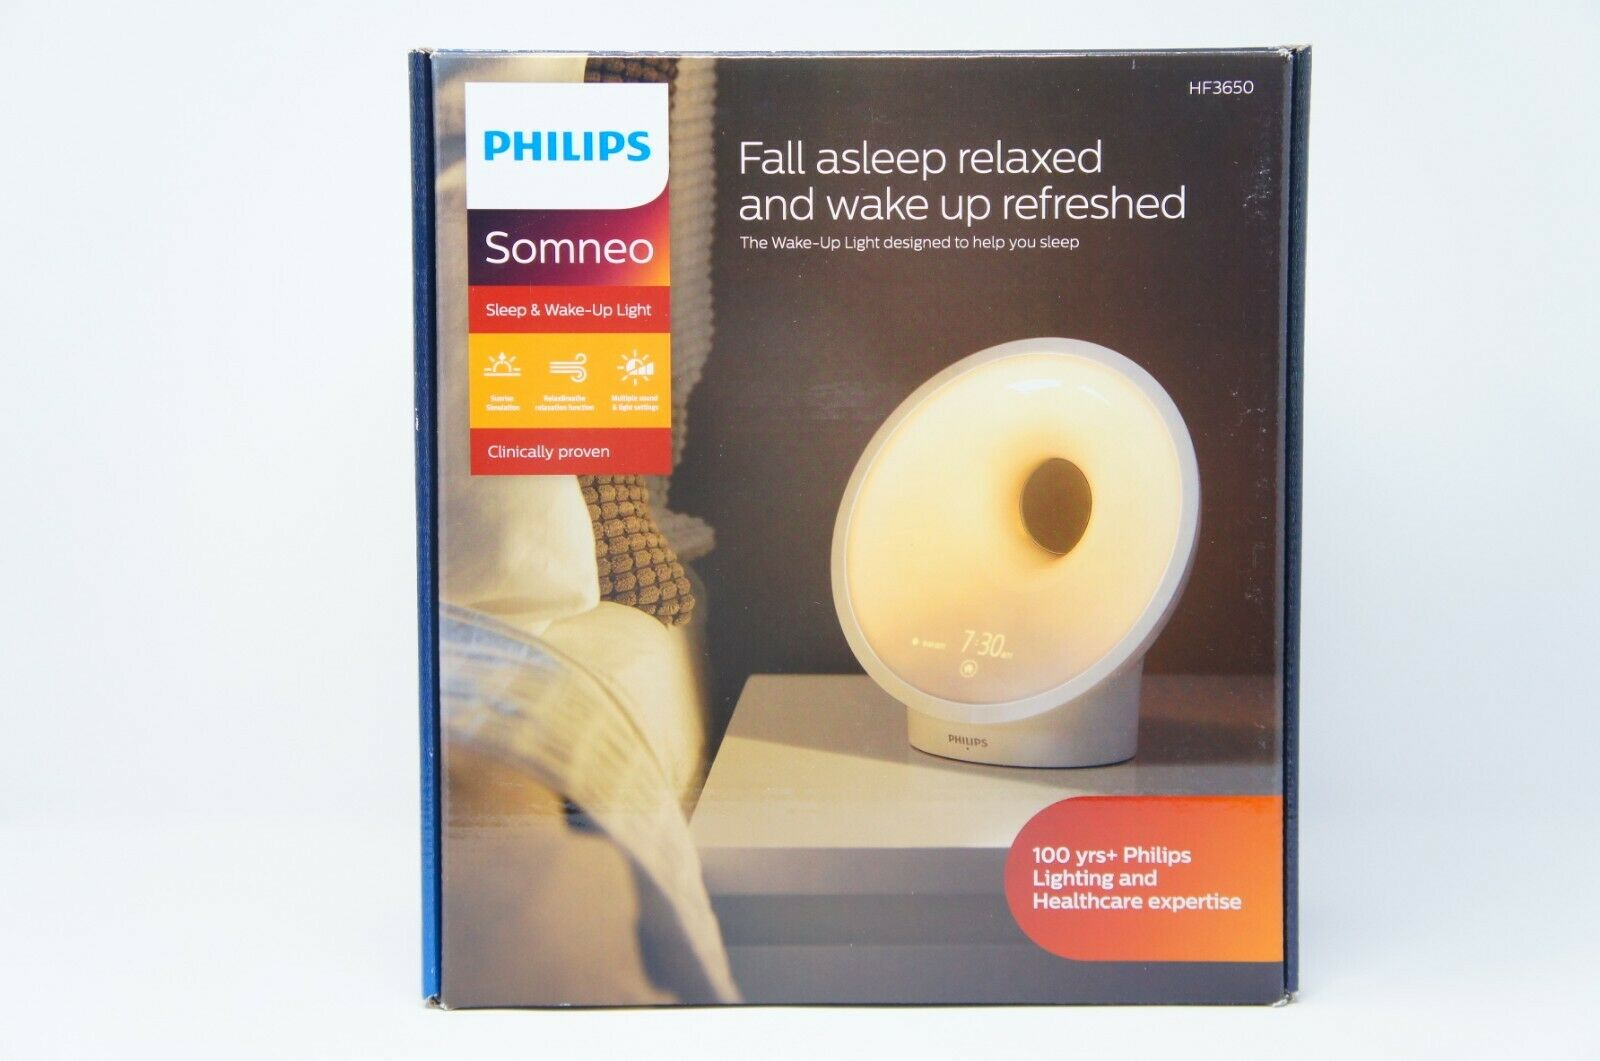 Philips HF3650/60 Sleep and Wake-up Light Therapy Lamp